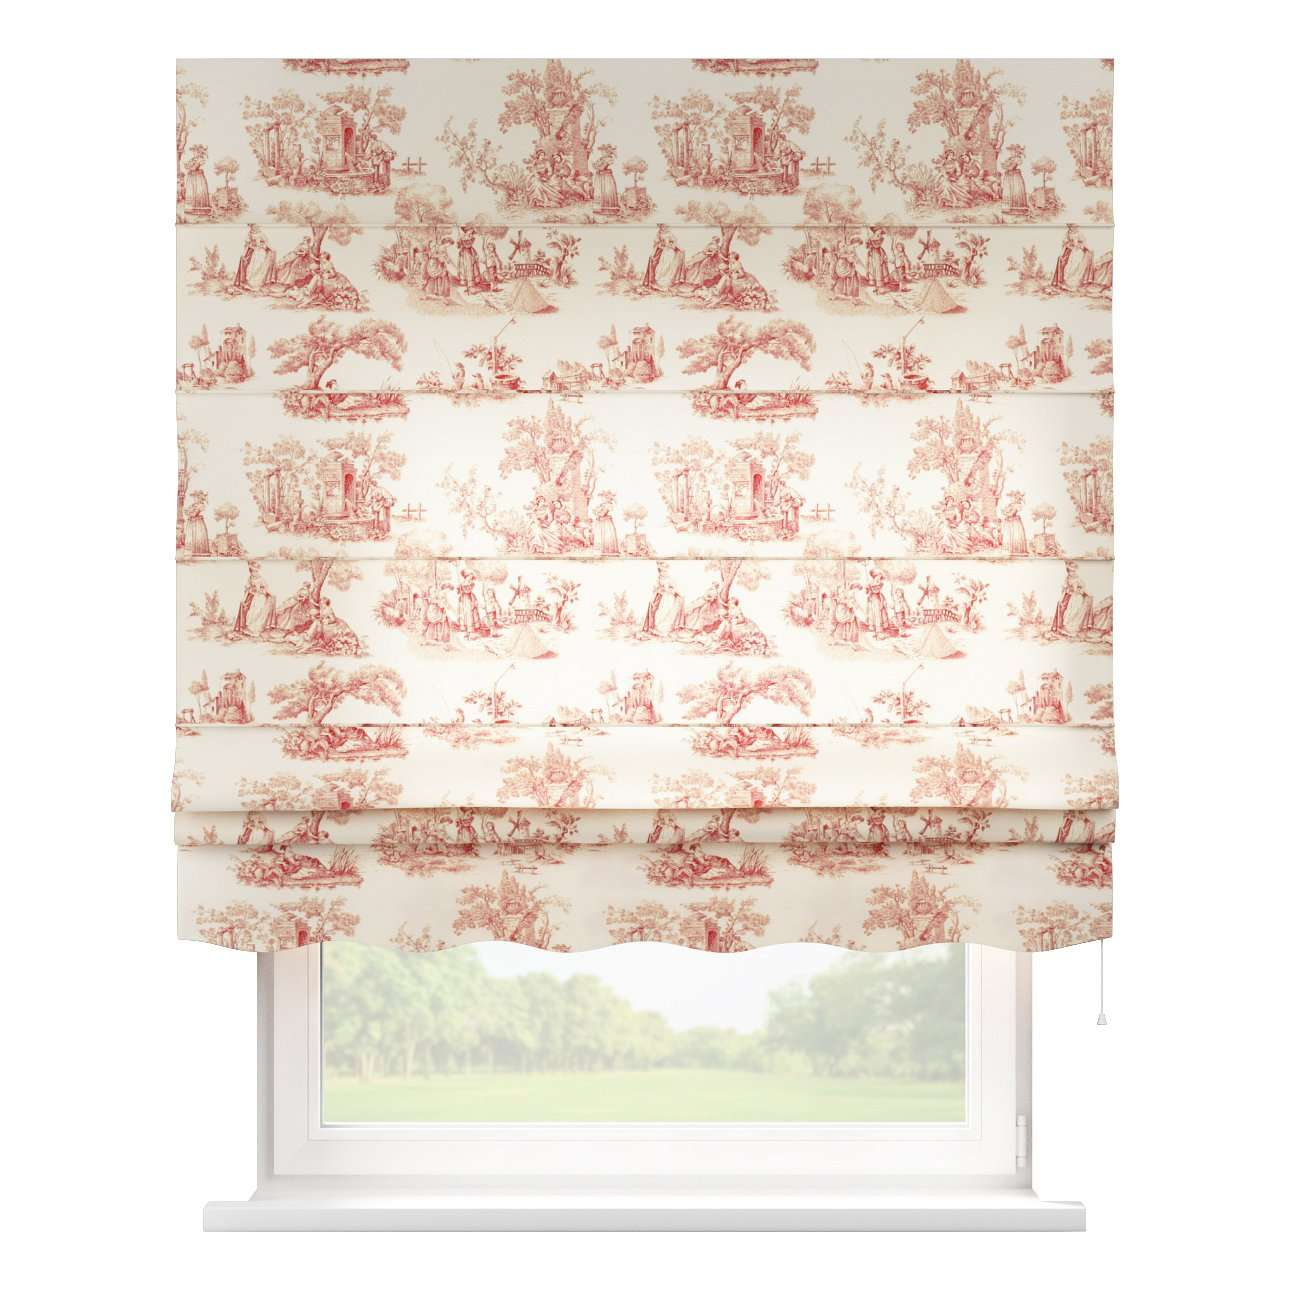 Florence roman blind  80 x 170 cm (31.5 x 67 inch) in collection Avinon, fabric: 132-15